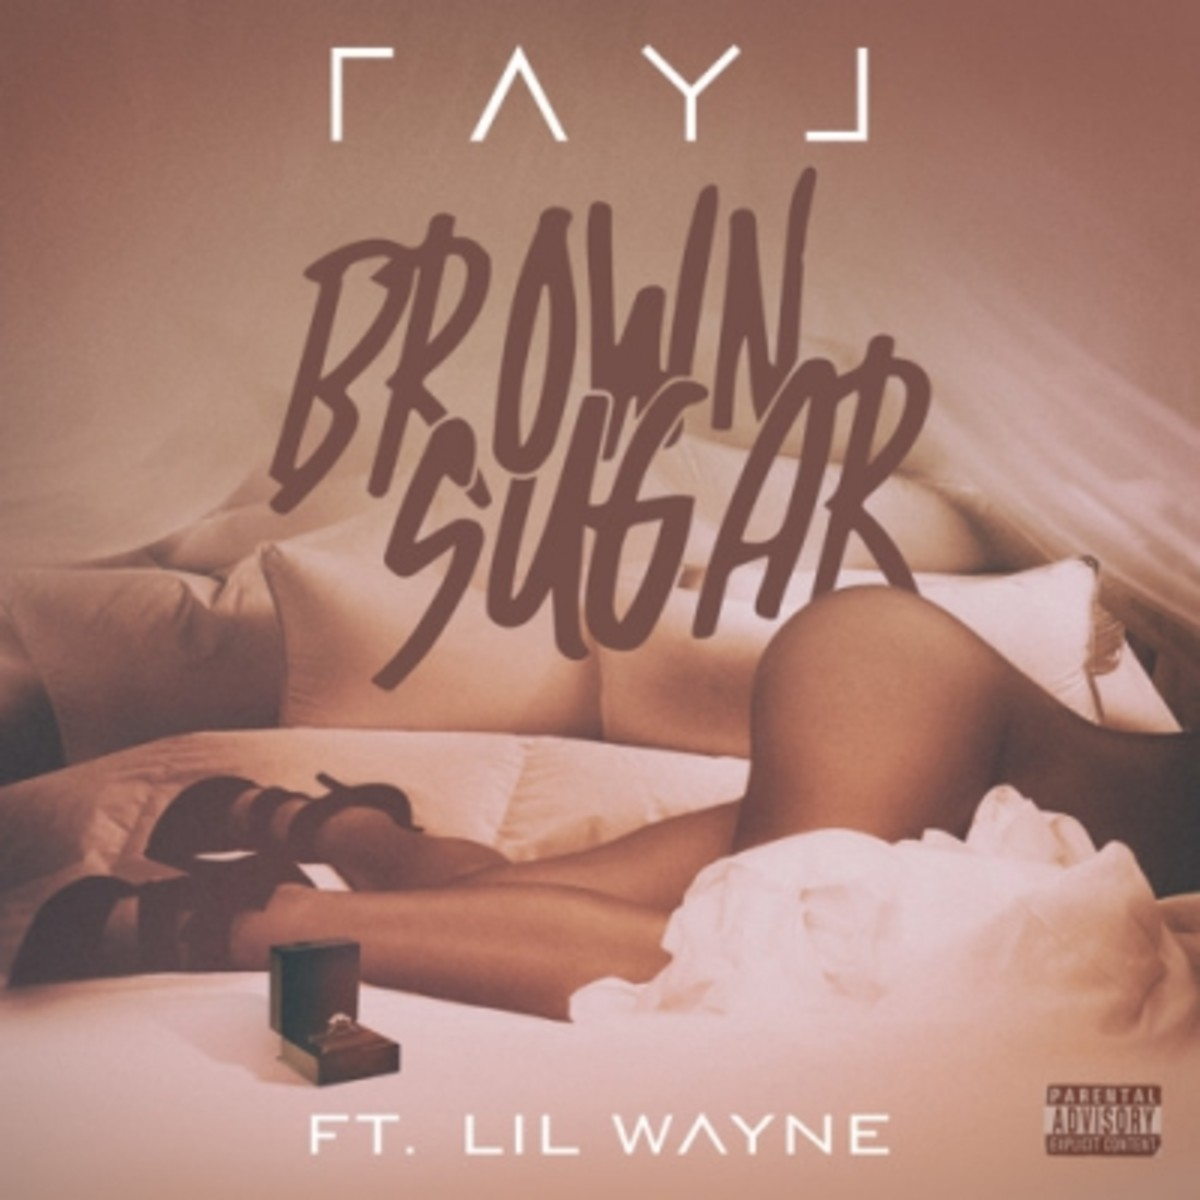 ray-j-brown-sugar.jpg